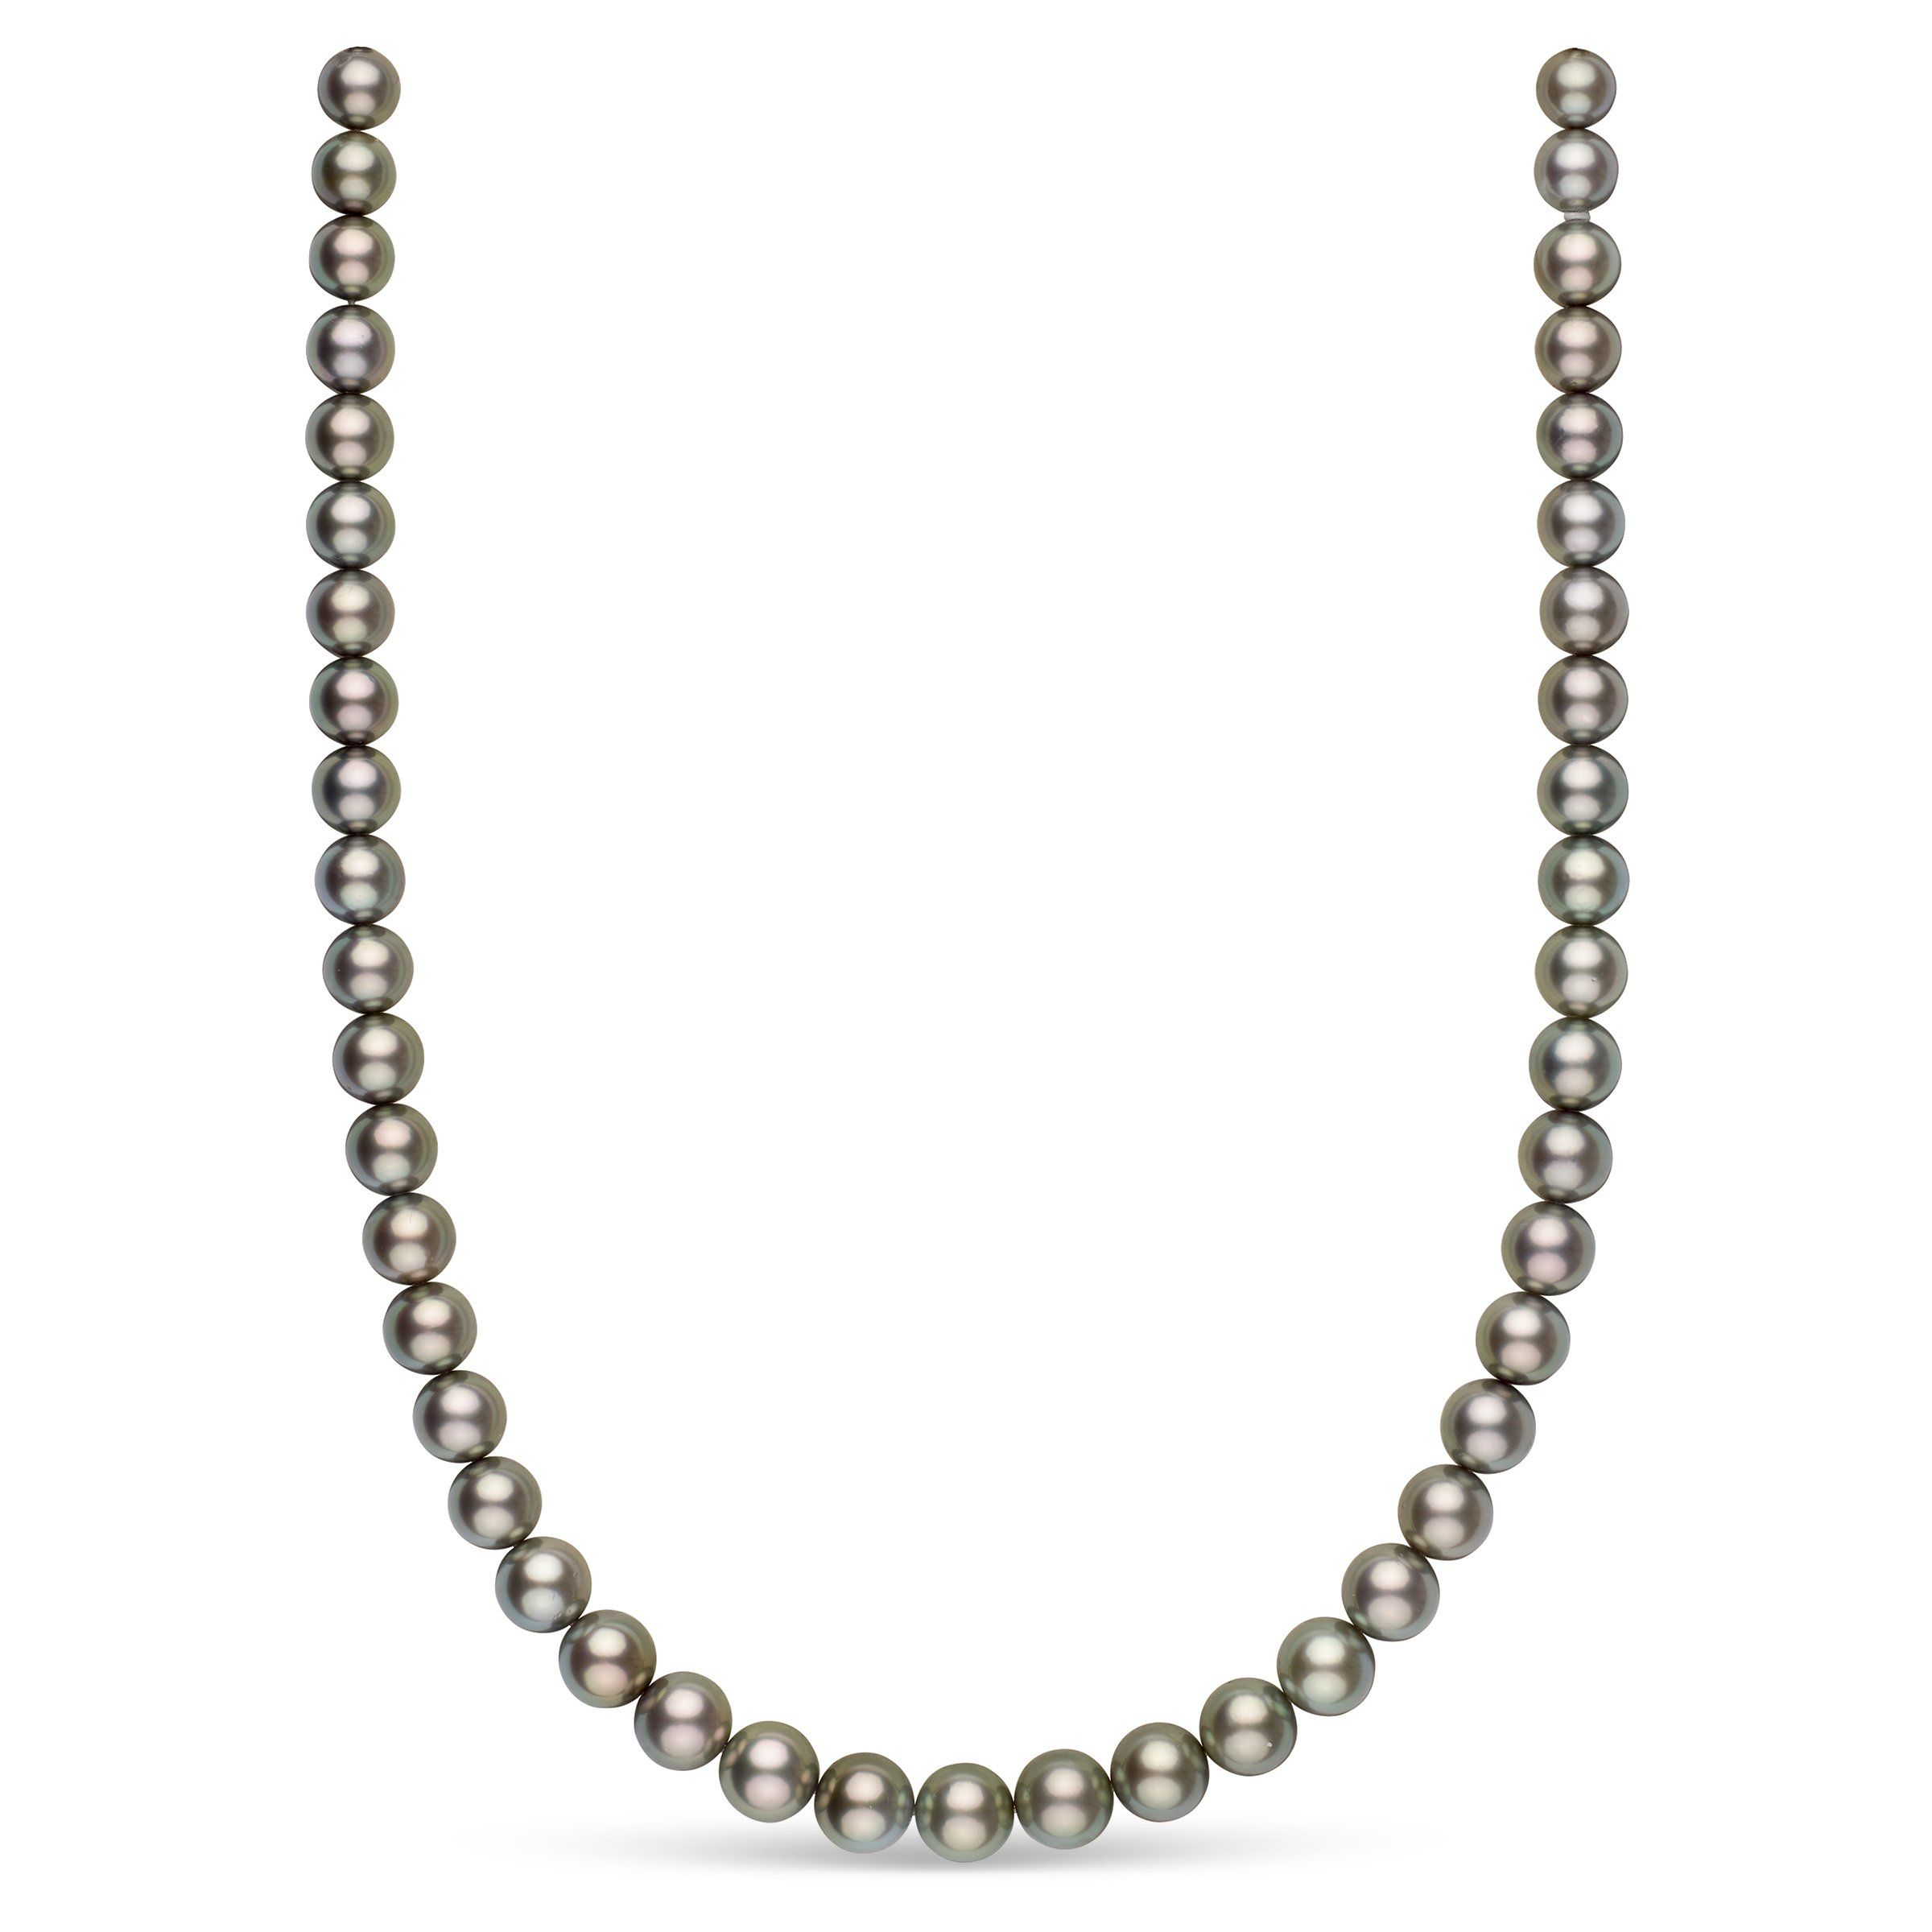 8.0-9.9 mm AAA Tahitian Round Pearl Necklace